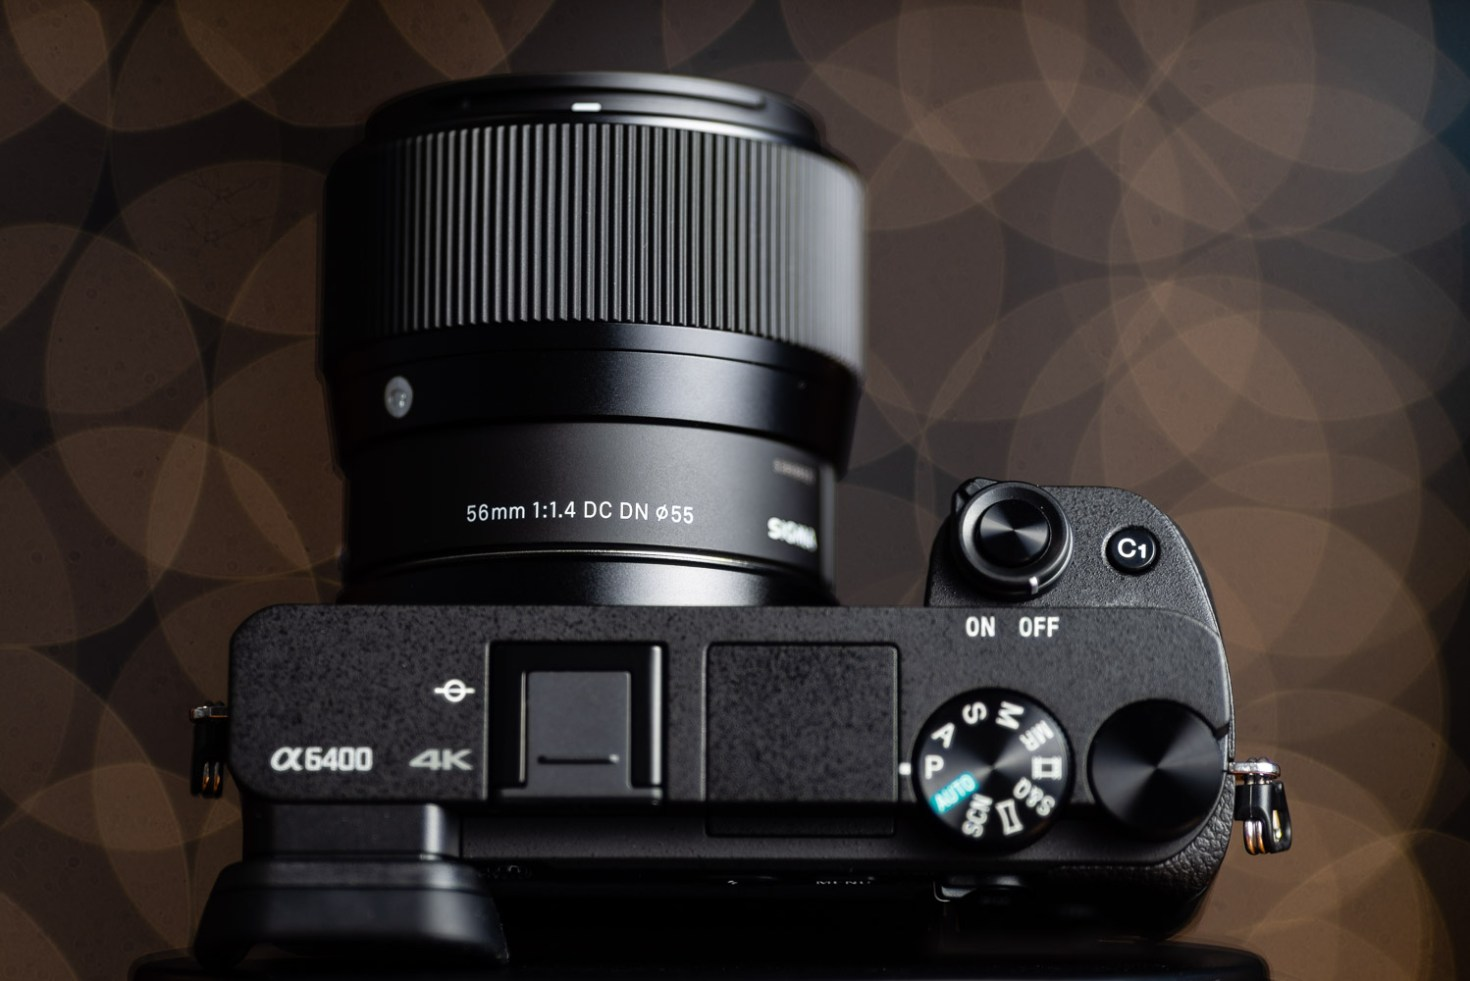 Sigma 56mm f/1.4 DC DN Lens on the Sony A6400